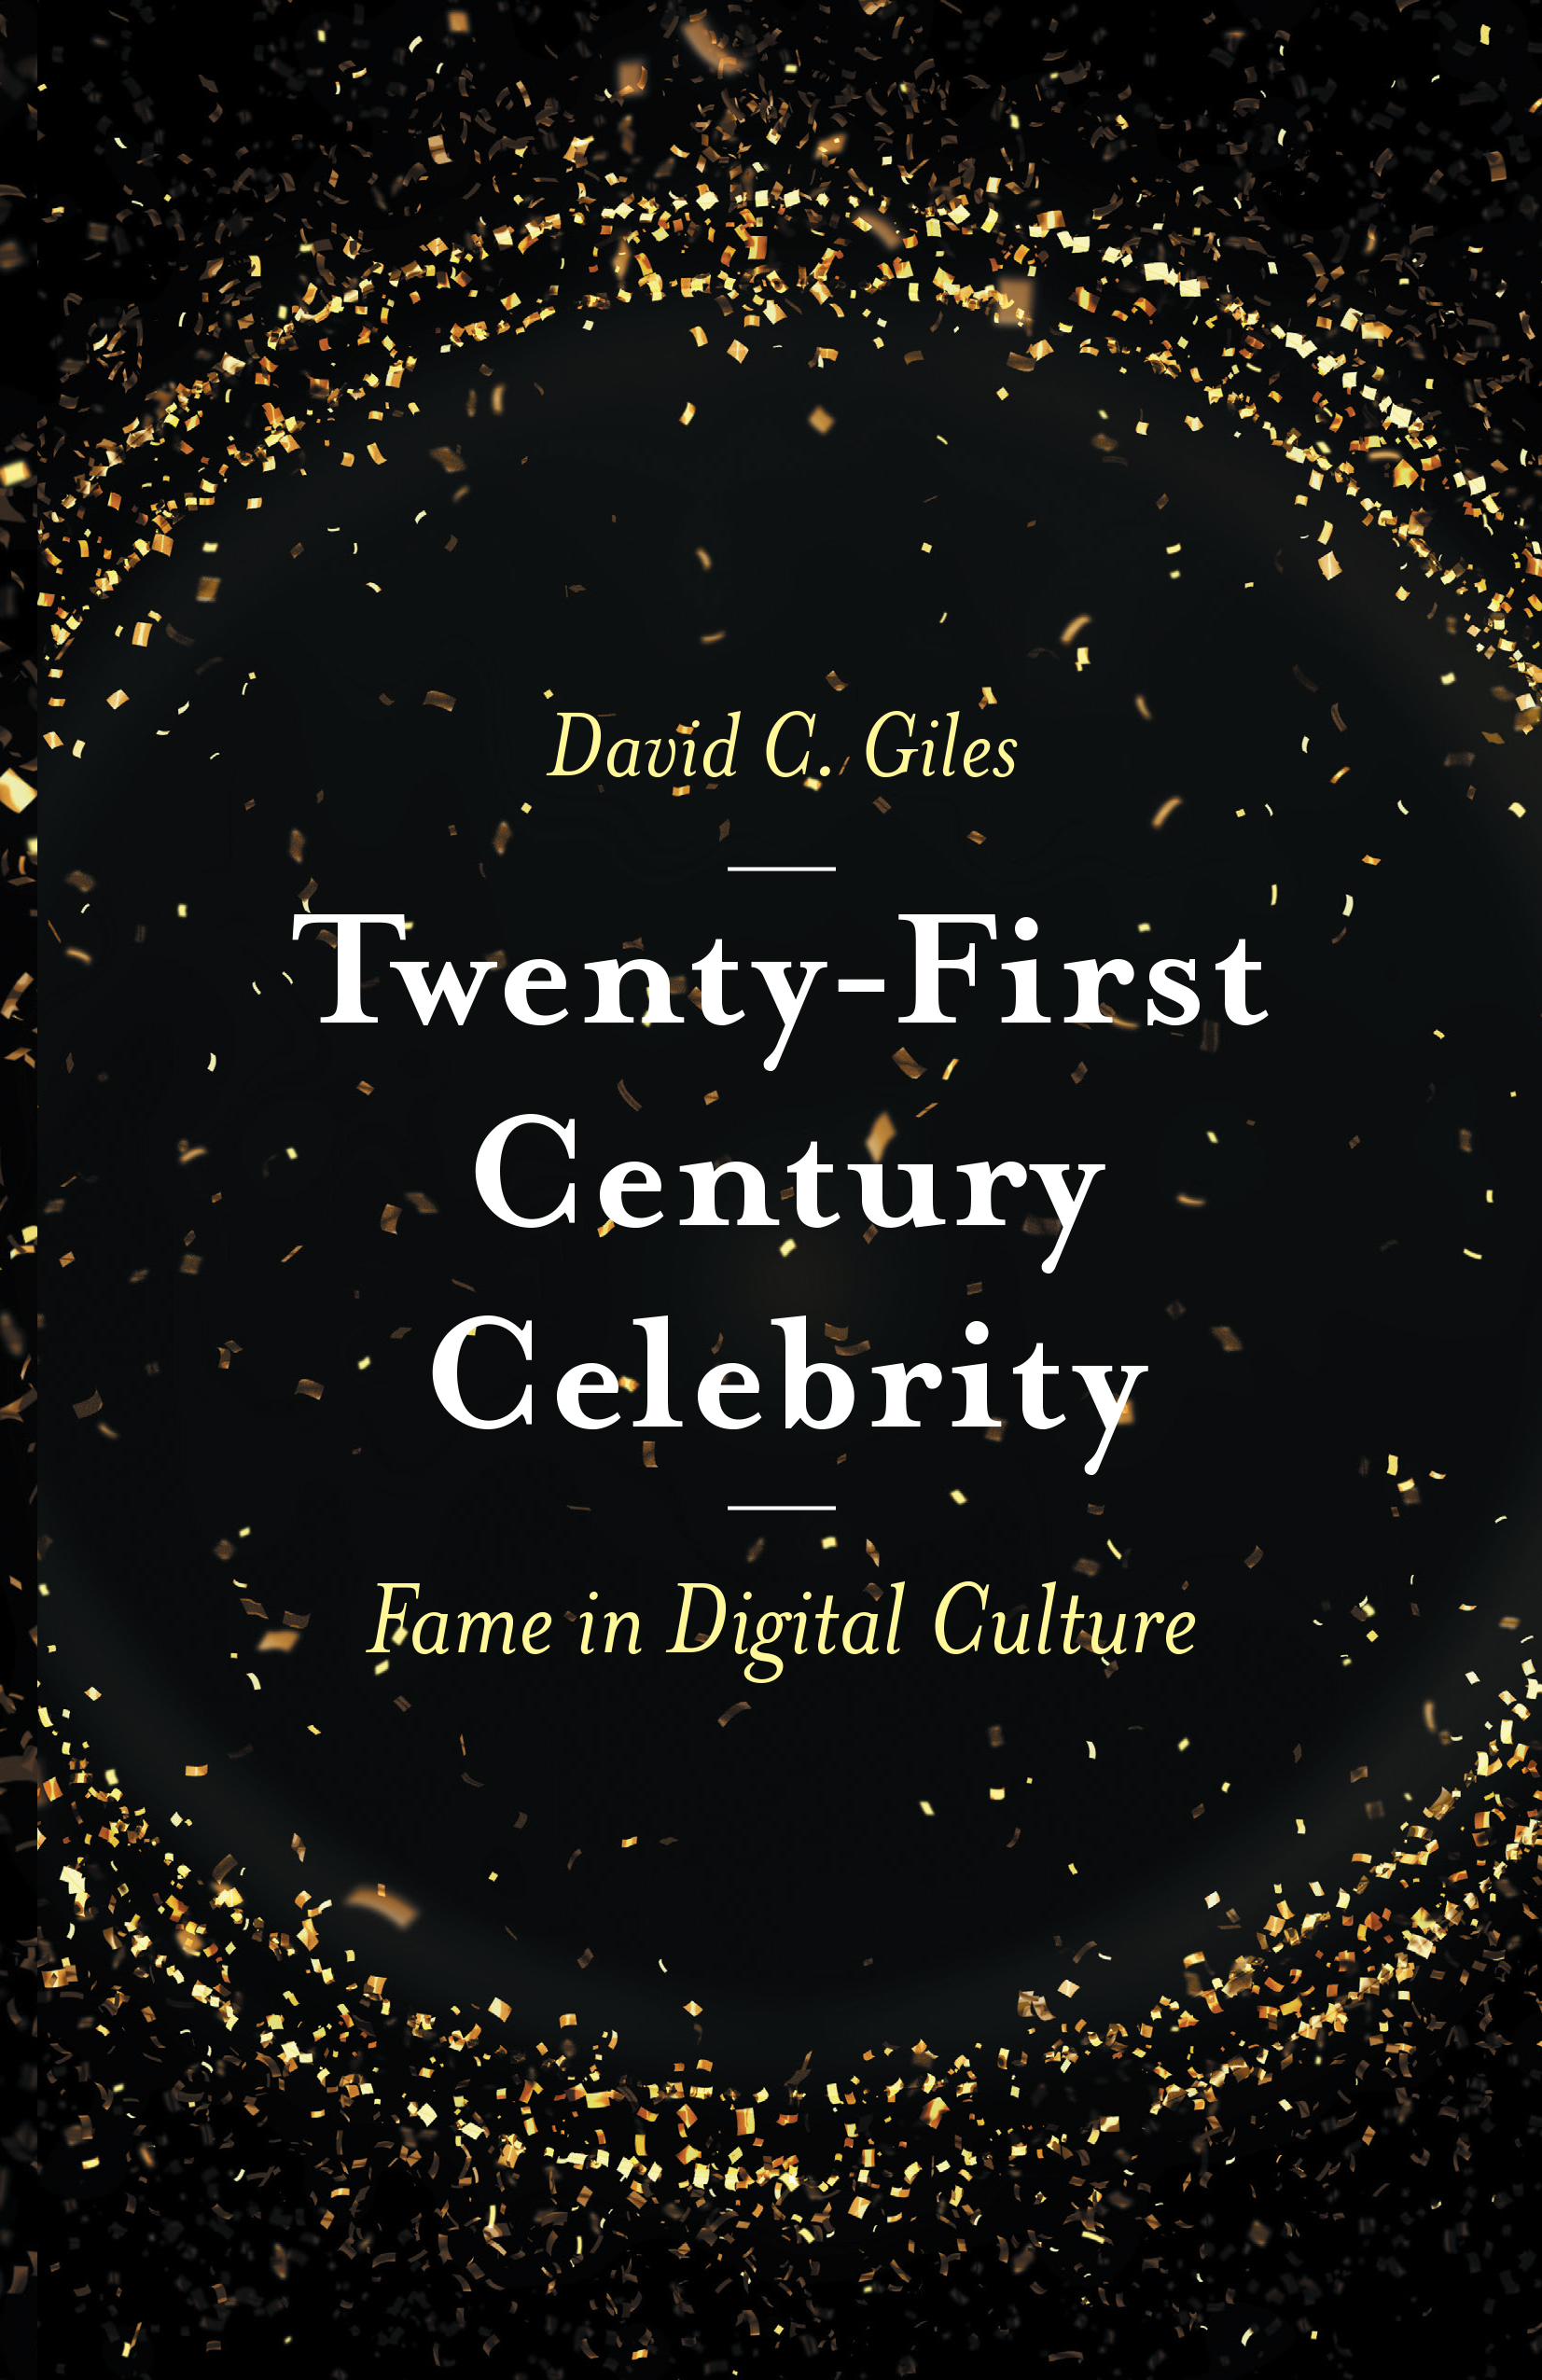 Book cover for Twenty-First Century Celebrity:  Fame in Digital Culture a book by David C. Giles